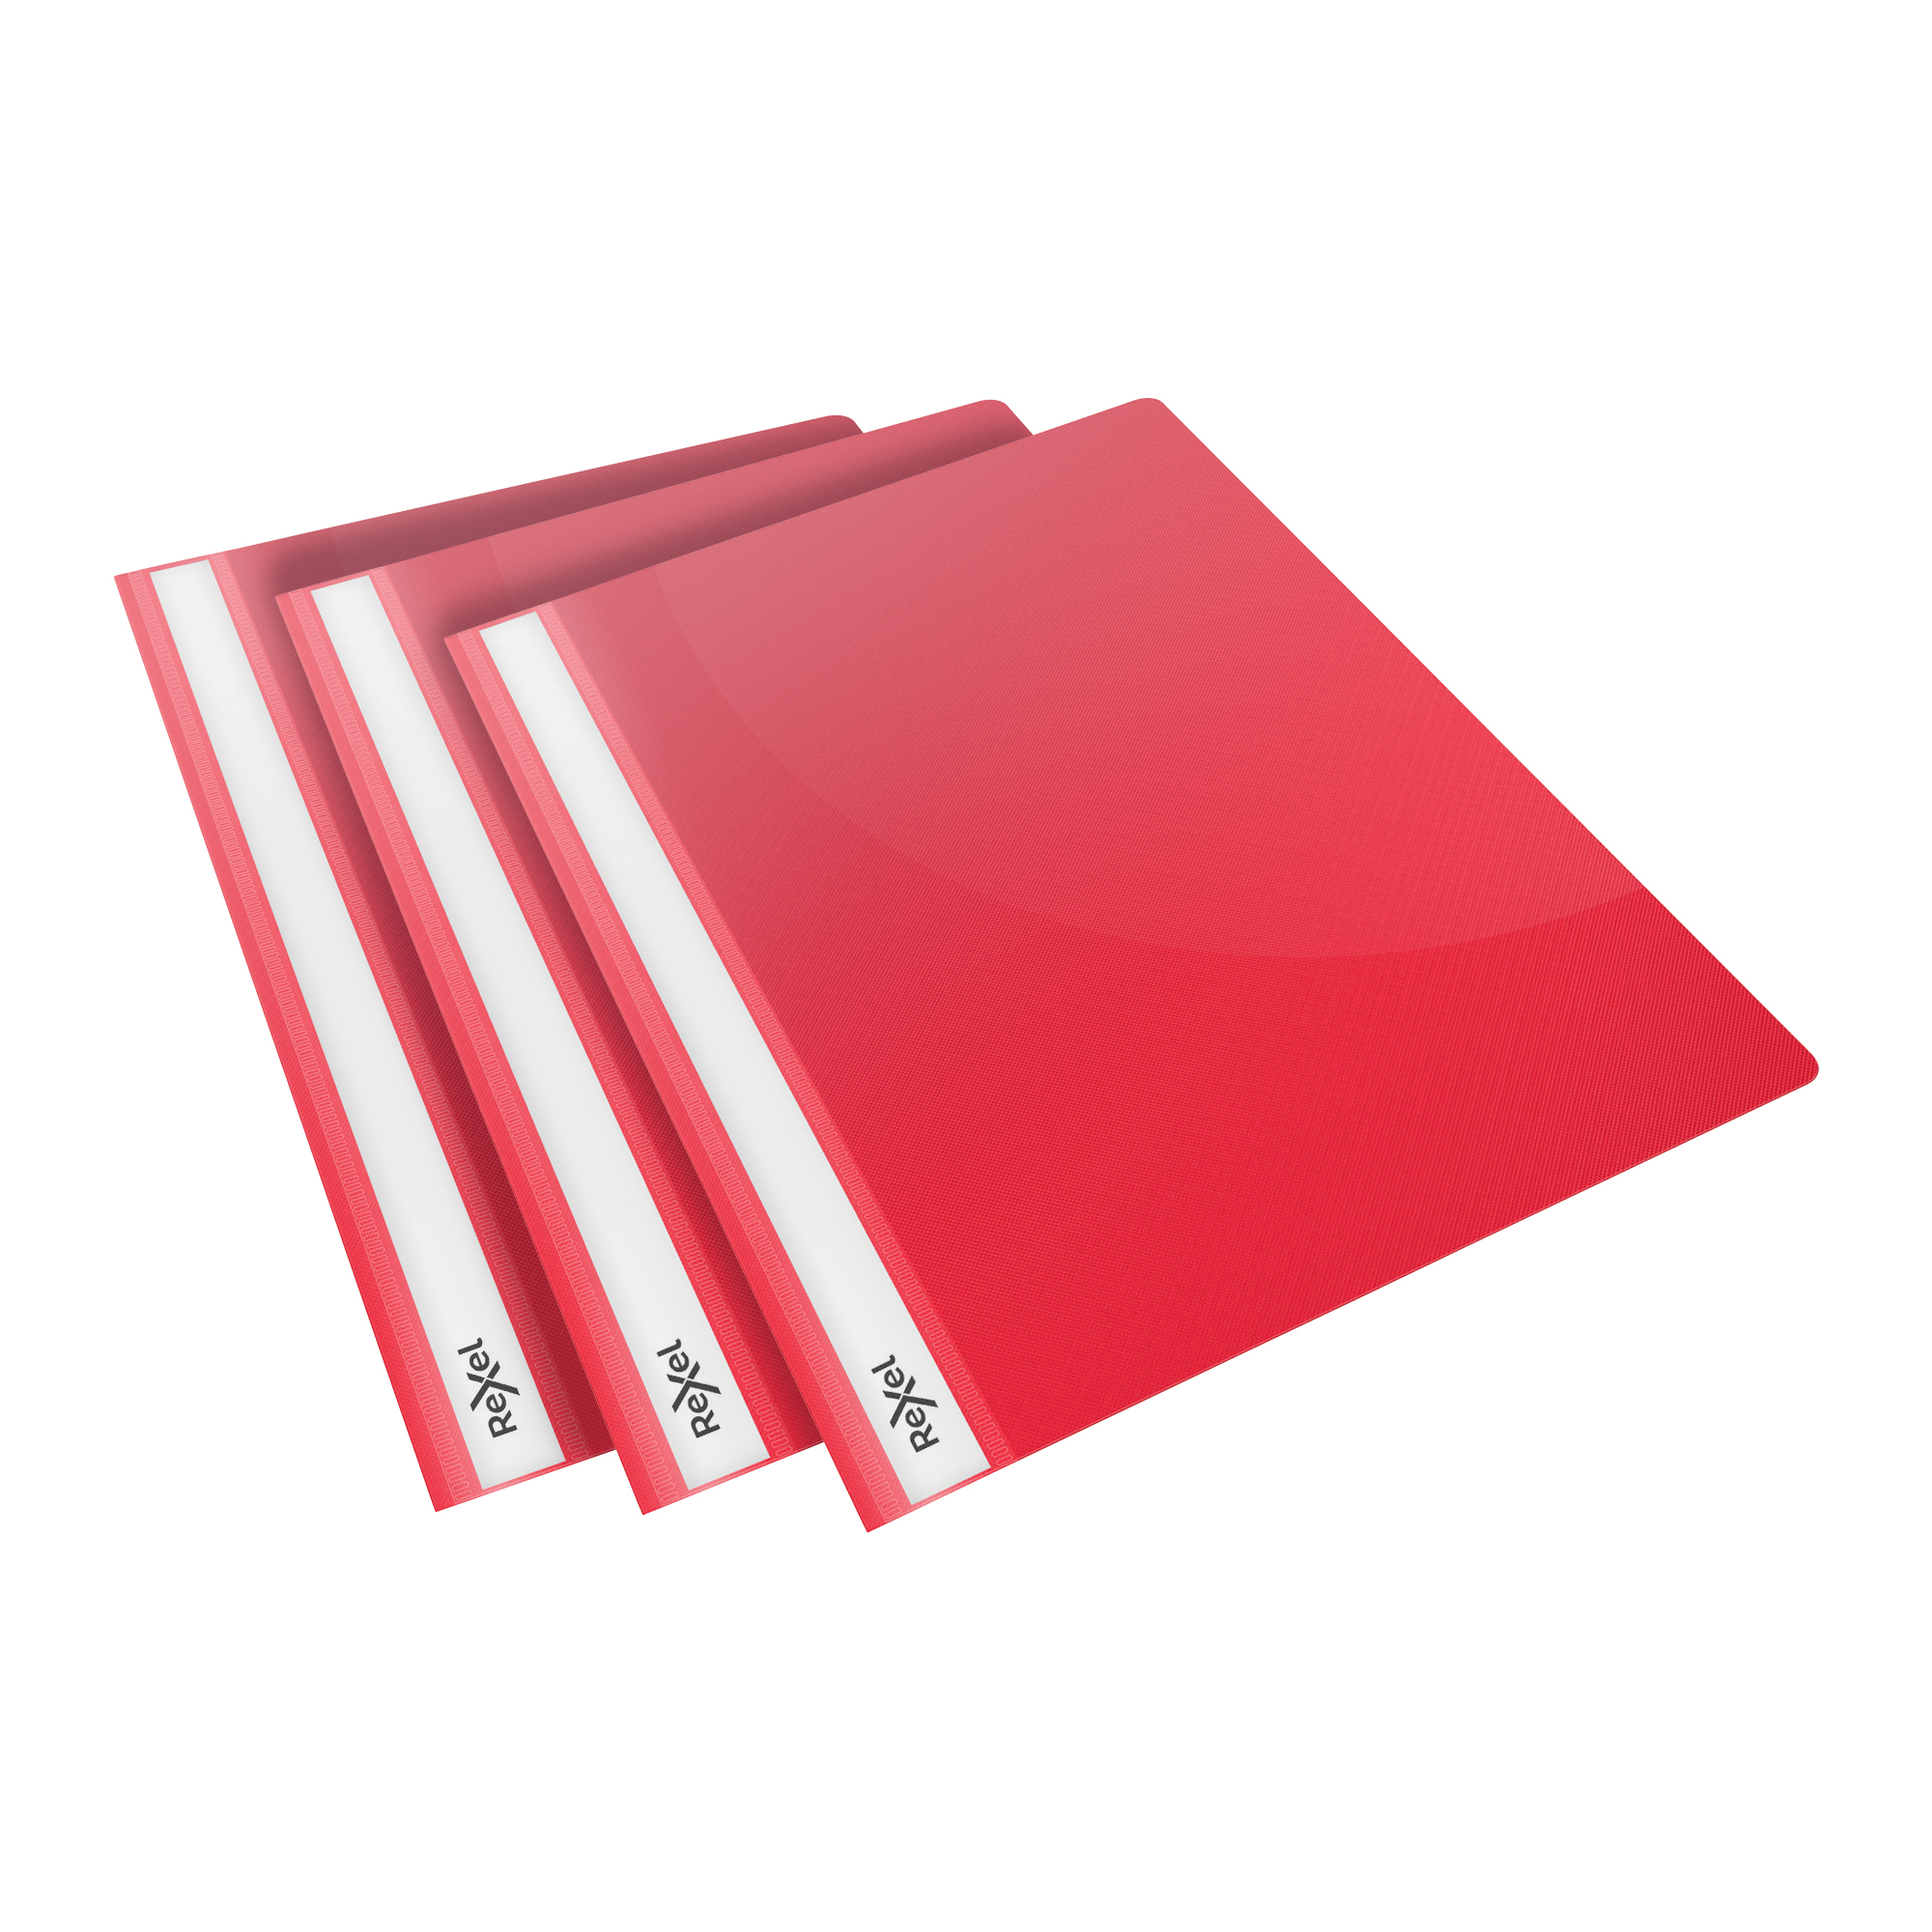 Folders Rexel Choices Report Fldr Clear Front Capacity 160 Sheets A4 Red Ref 2115642 Pack 25